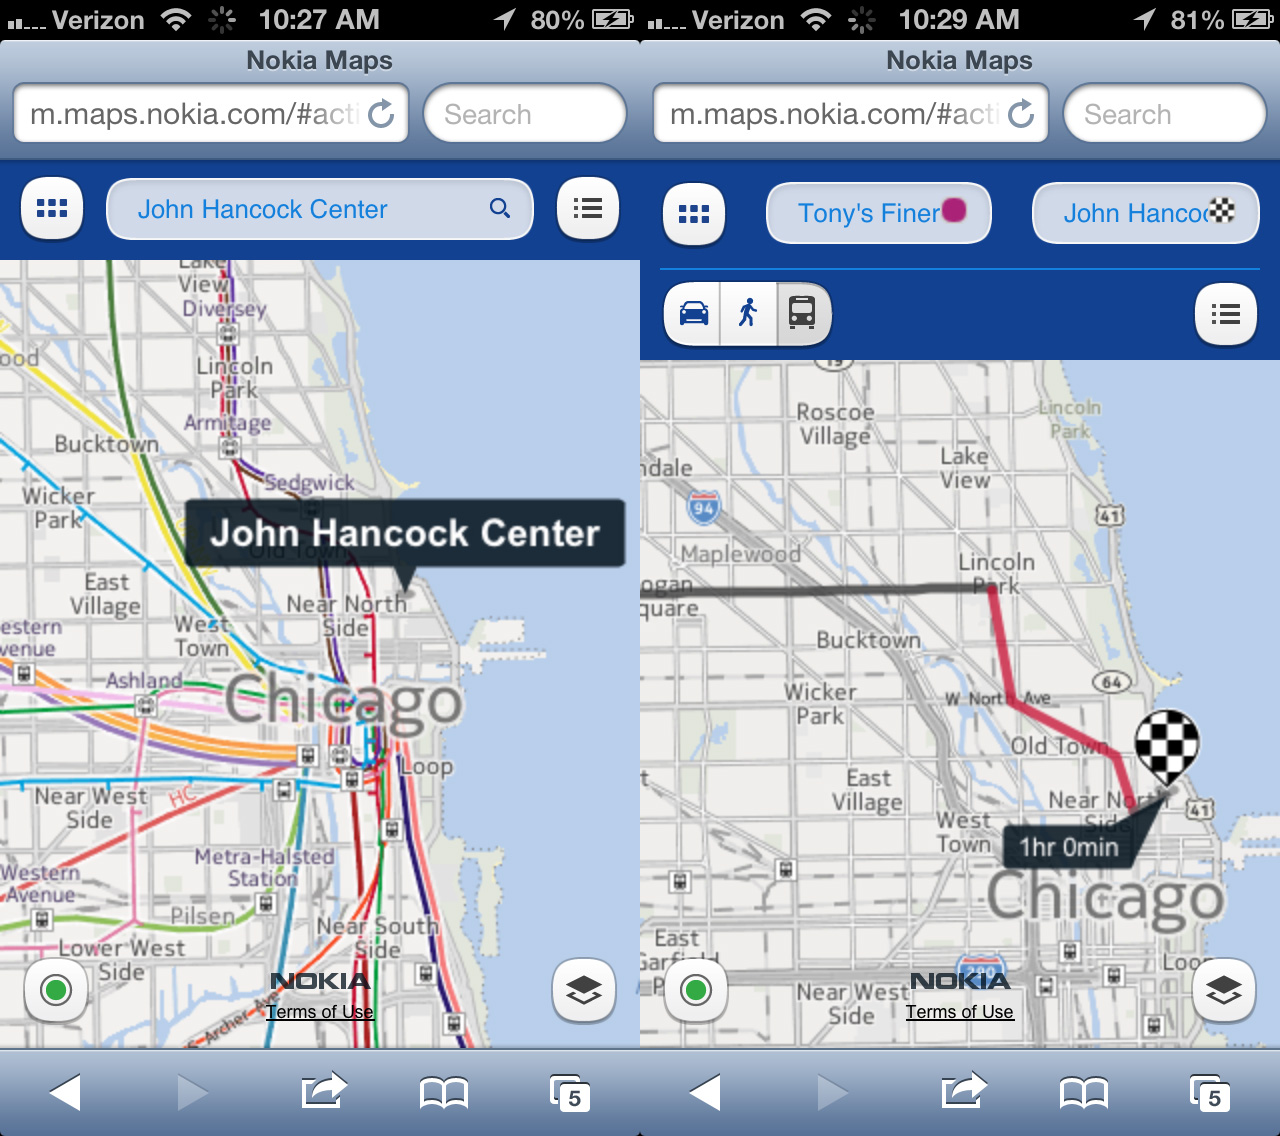 Replacing iOS 6 Maps: Hands-on with MapQuest, Bing, Waze, Google ...